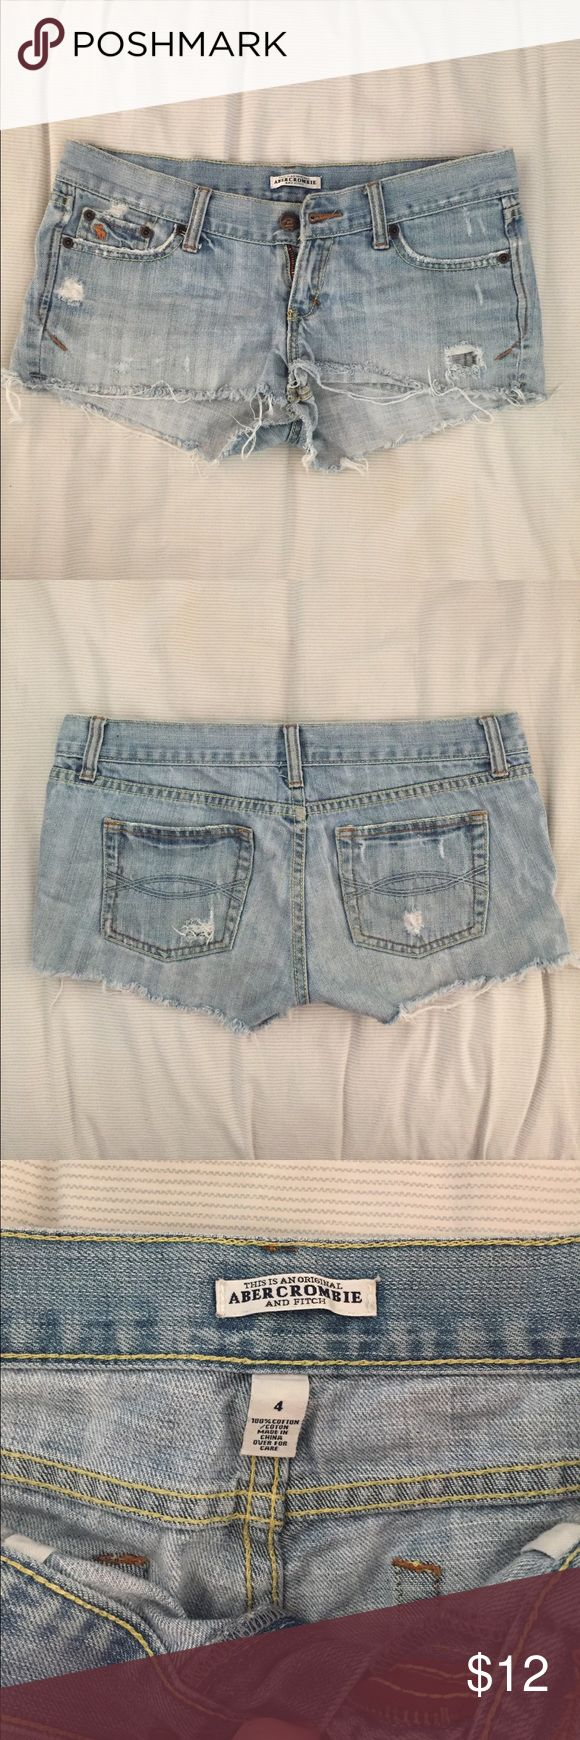 Abercrombie & Fitch Shortie Jean Cutoff short sz 4 Great pair of jean shorts, previously loved. Perfectly distressed, light jean wash, size 4. Abercrombie & Fitch Shorts Jean Shorts